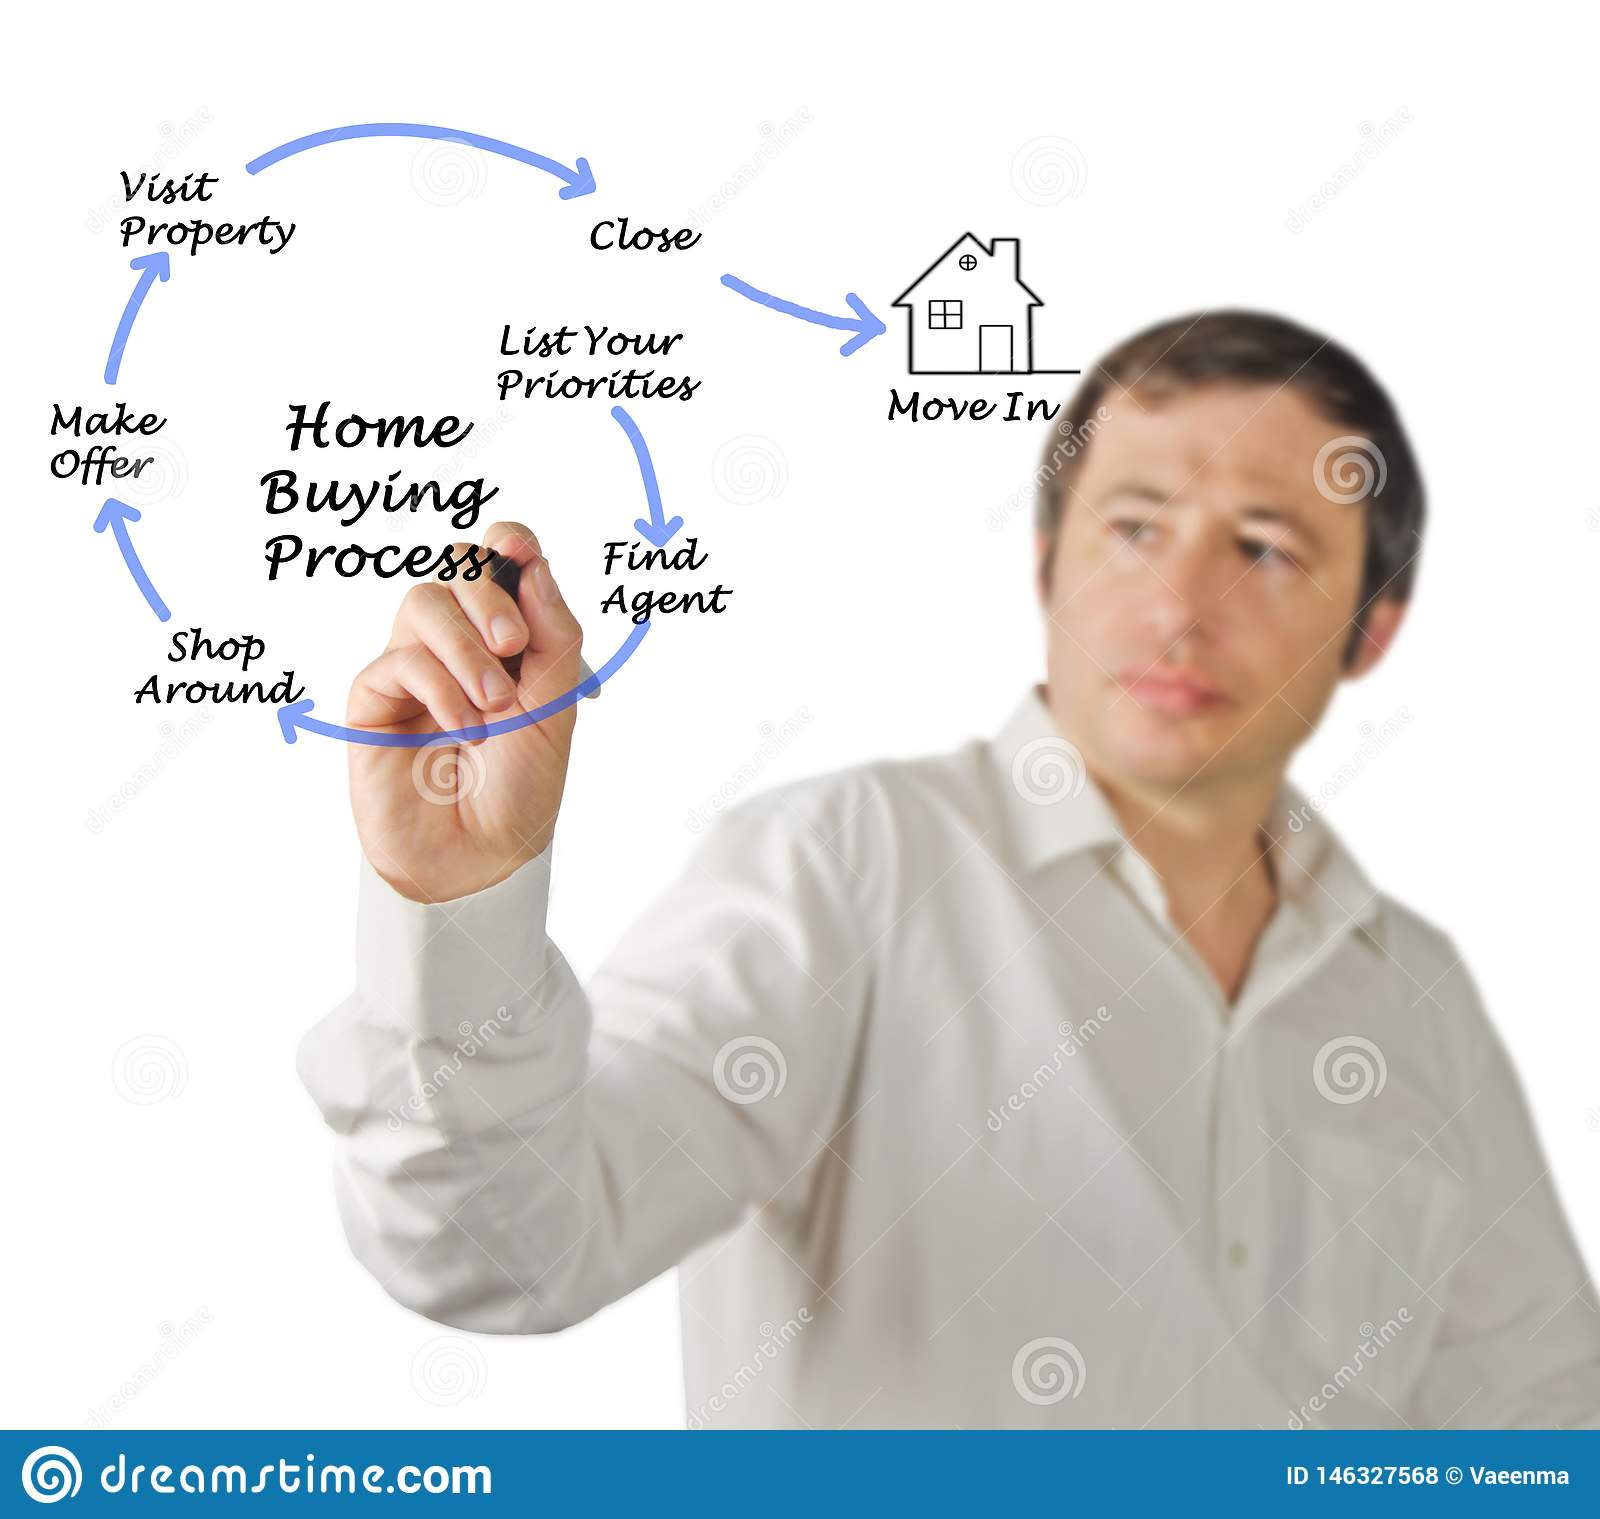 Buying real property